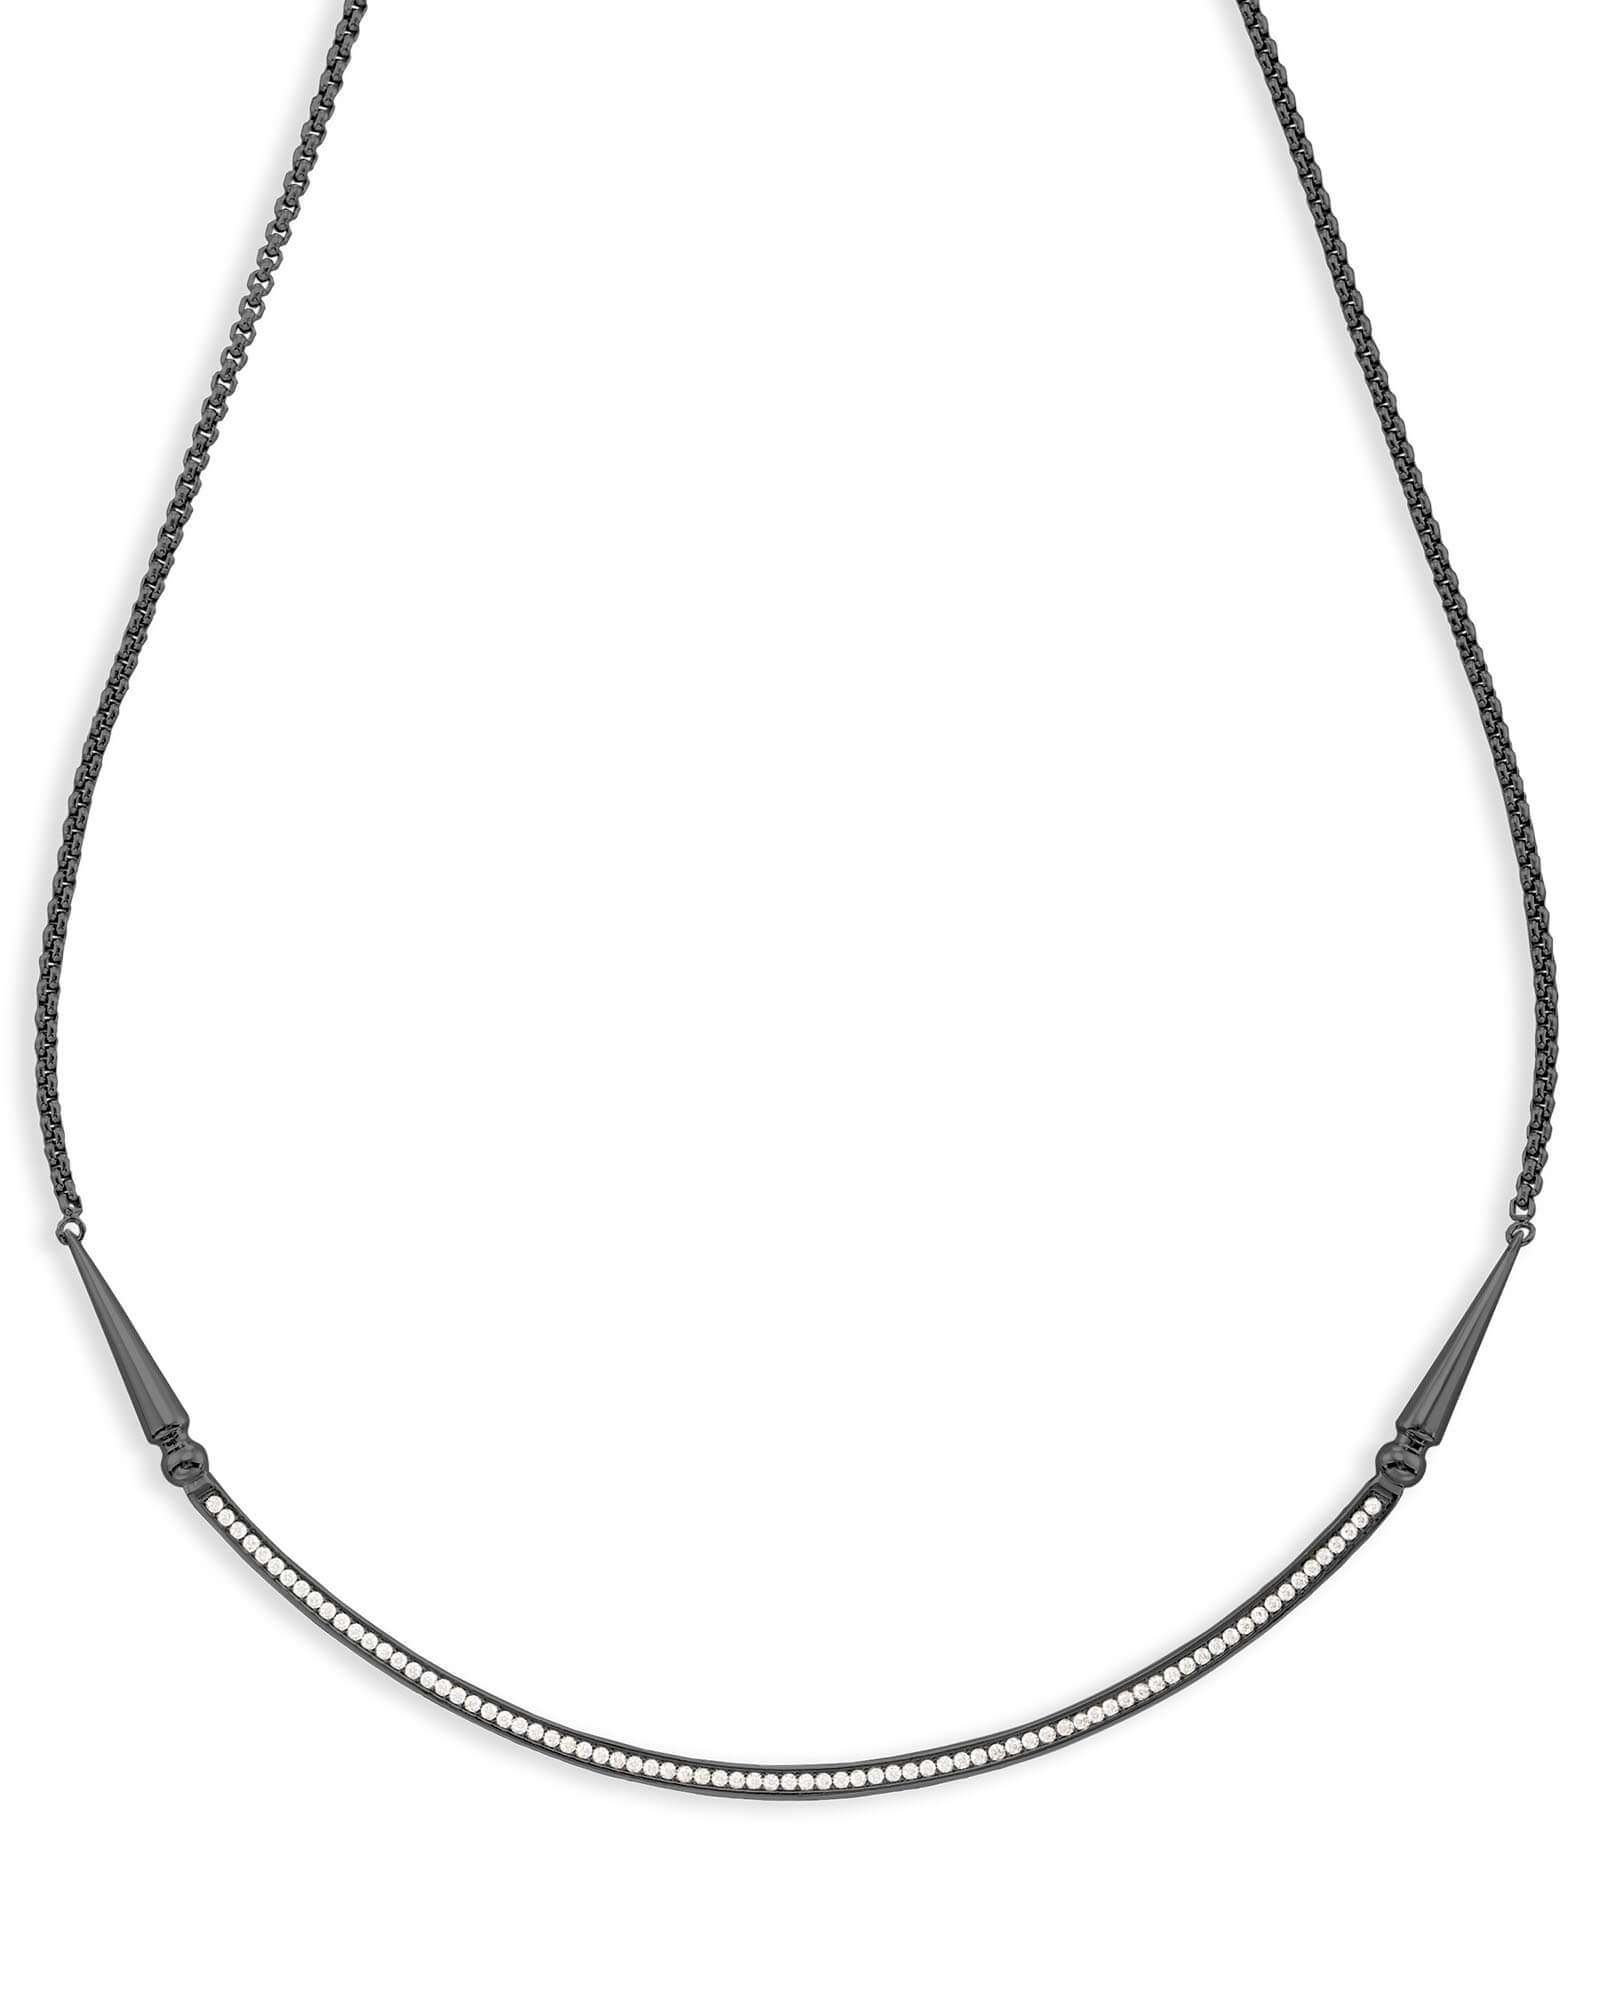 Scottie Choker Necklace in Gunmetal